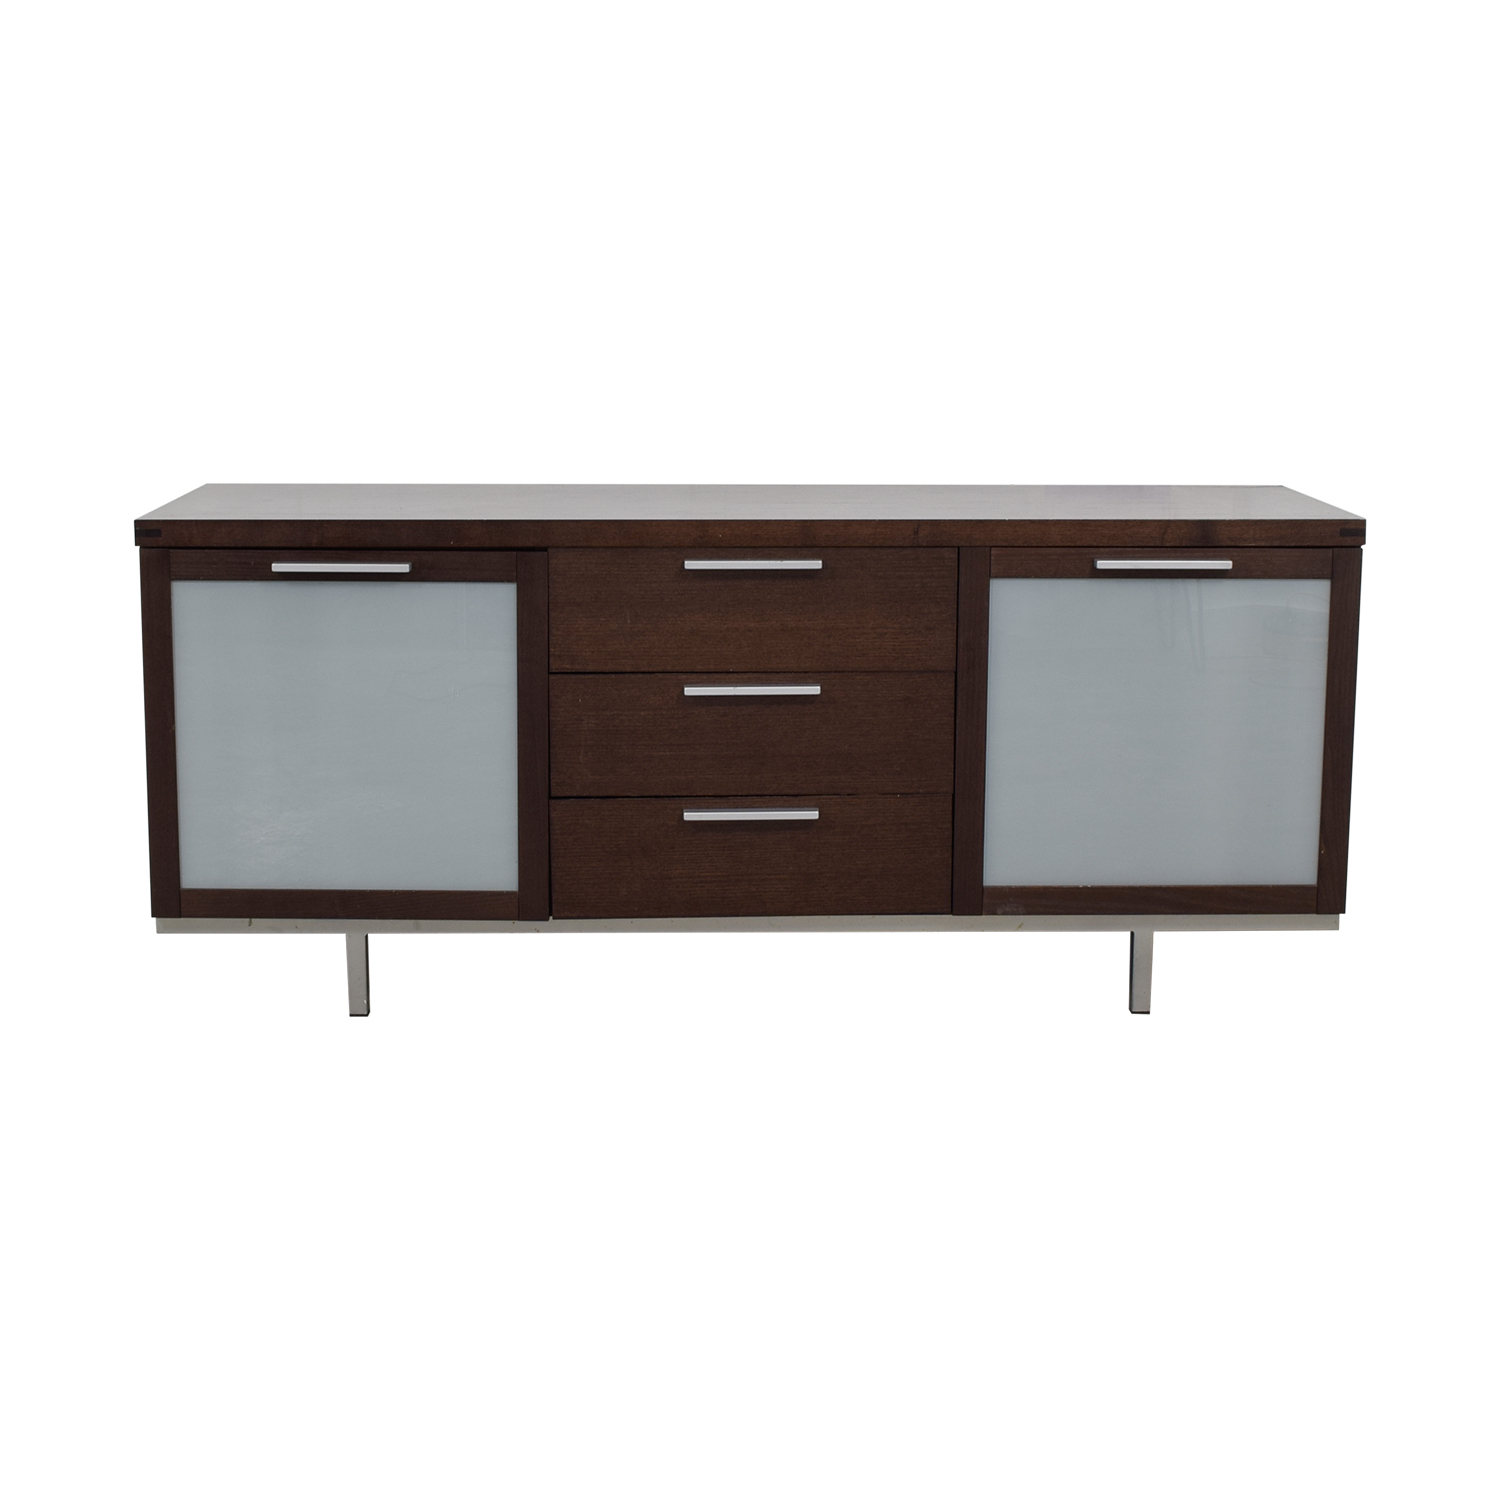 Calligaris Calligaris Wood and Glass Buffet nj